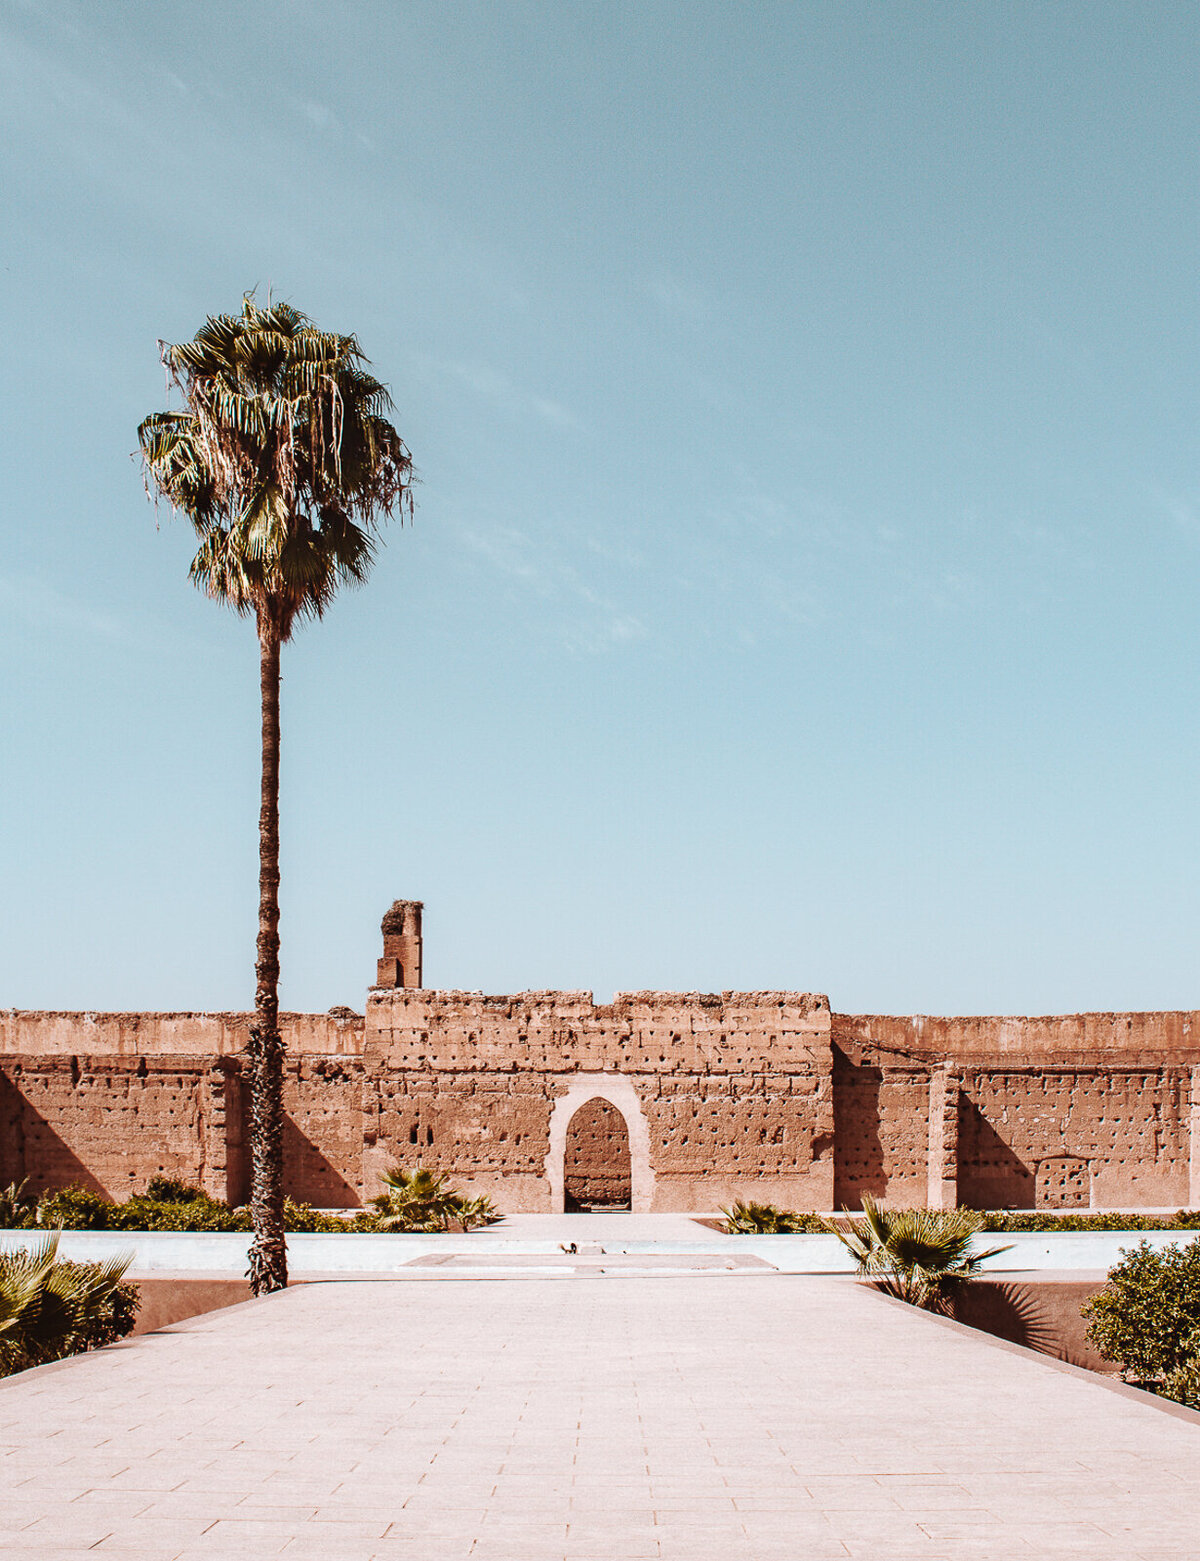 El Badii Palace, Marrakesh